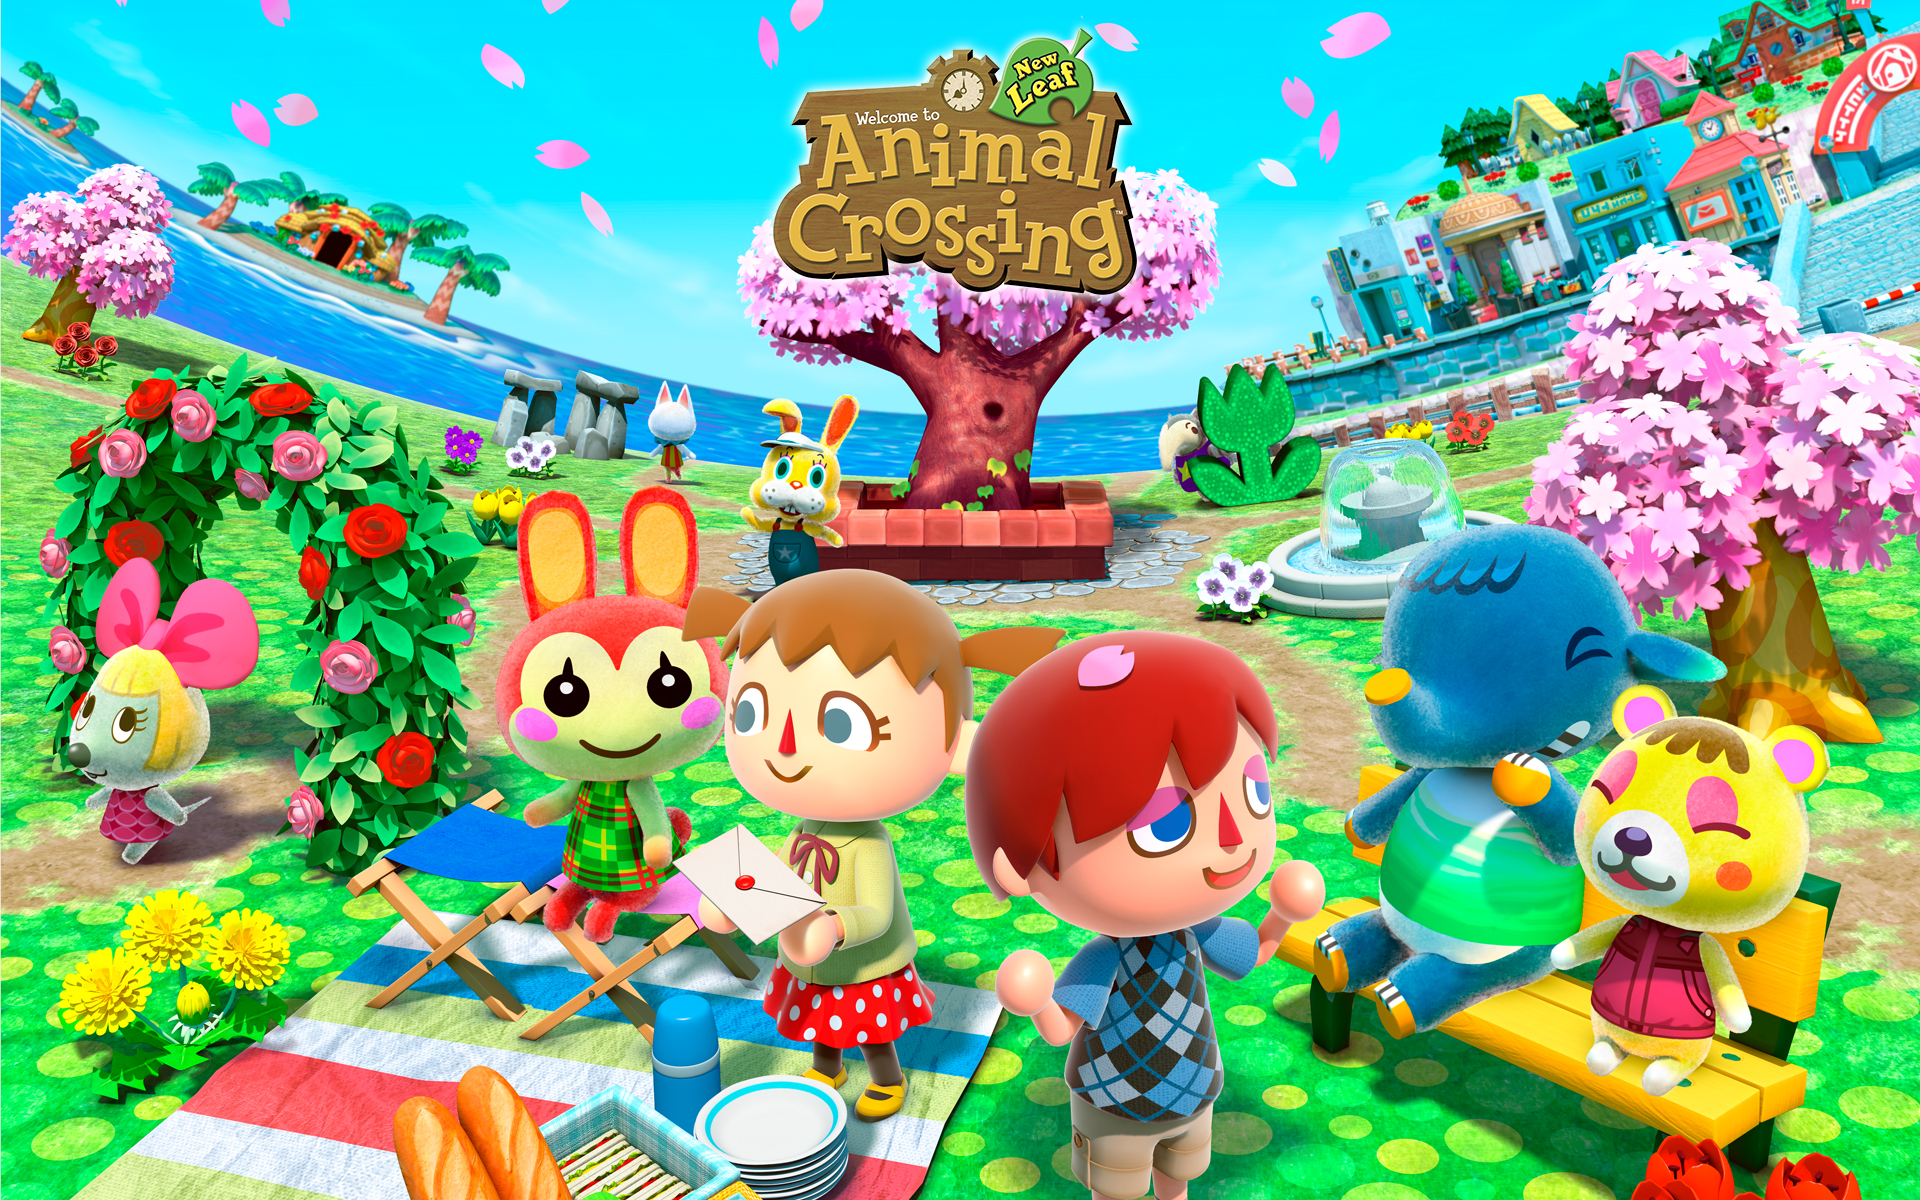 Animal-Crossing-New-Leaf-Wallpaper-animal-crossing-34657333-1920-1200 ...